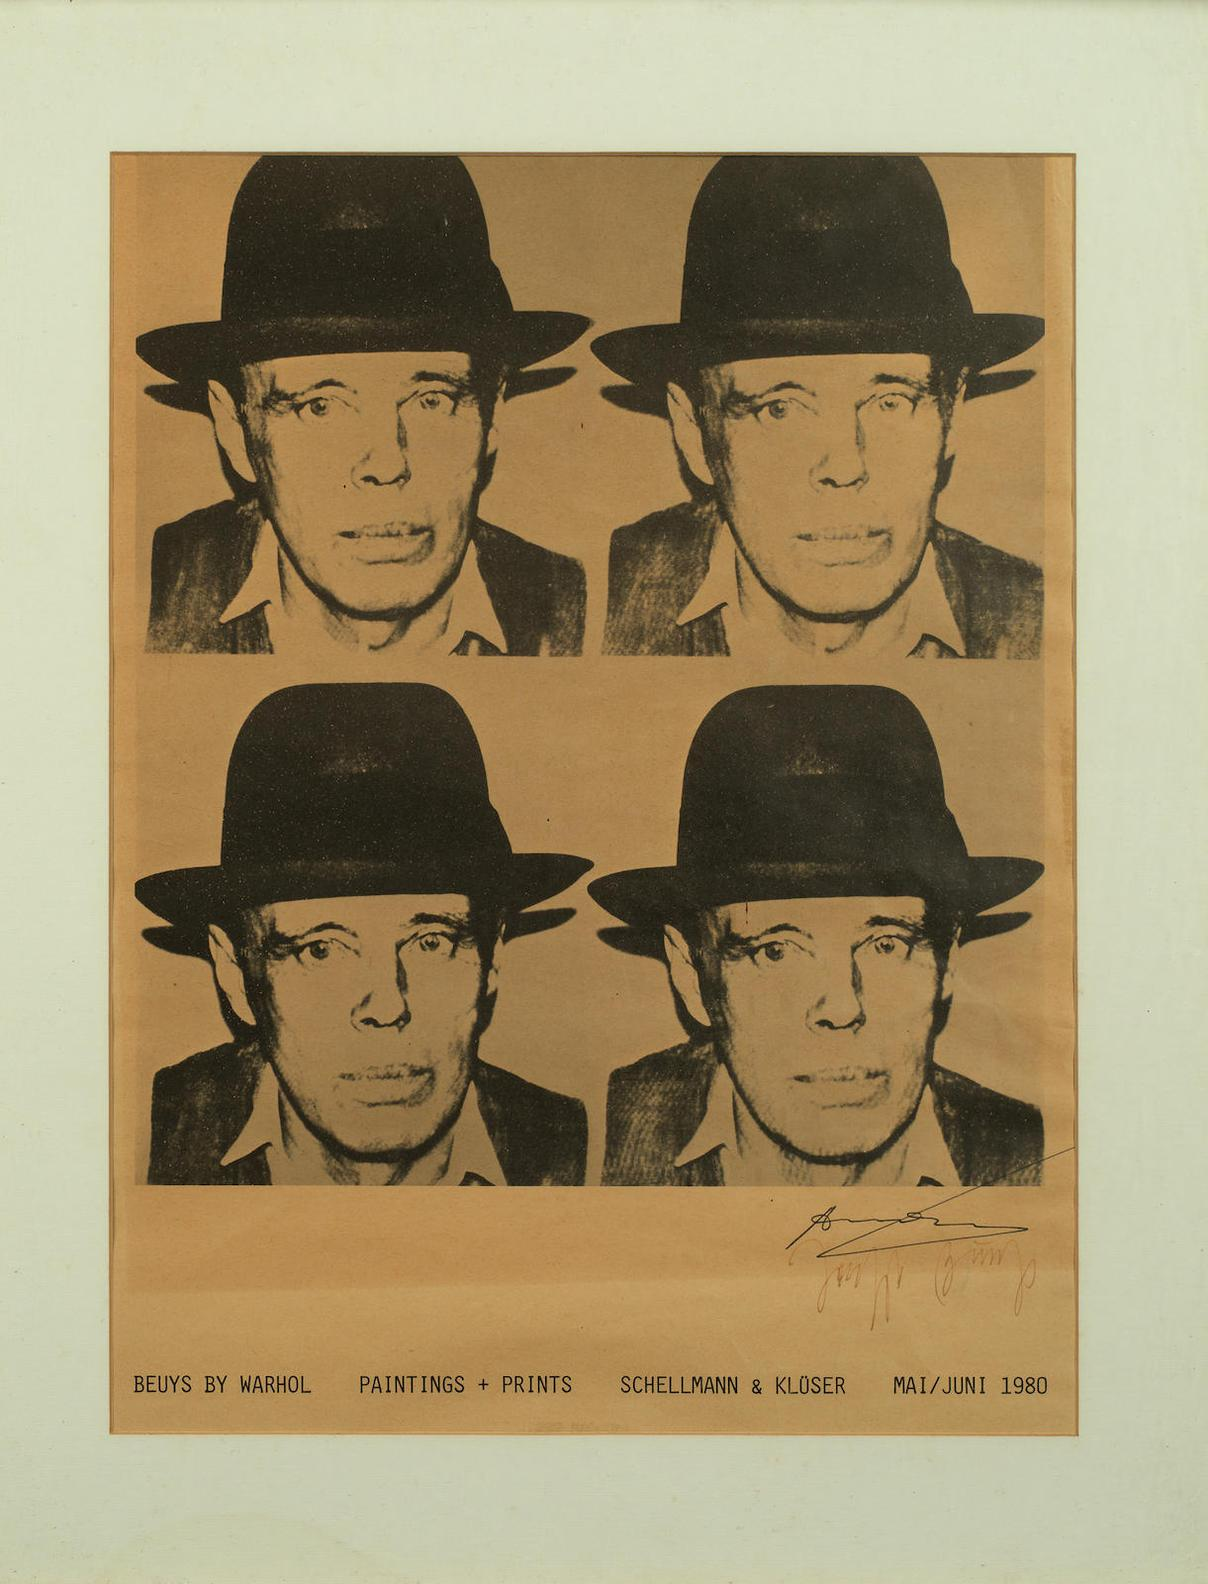 Andy Warhol-Beuys By Warhol: Paintings + Prints, Schellmann & Kluser, Munich-1980